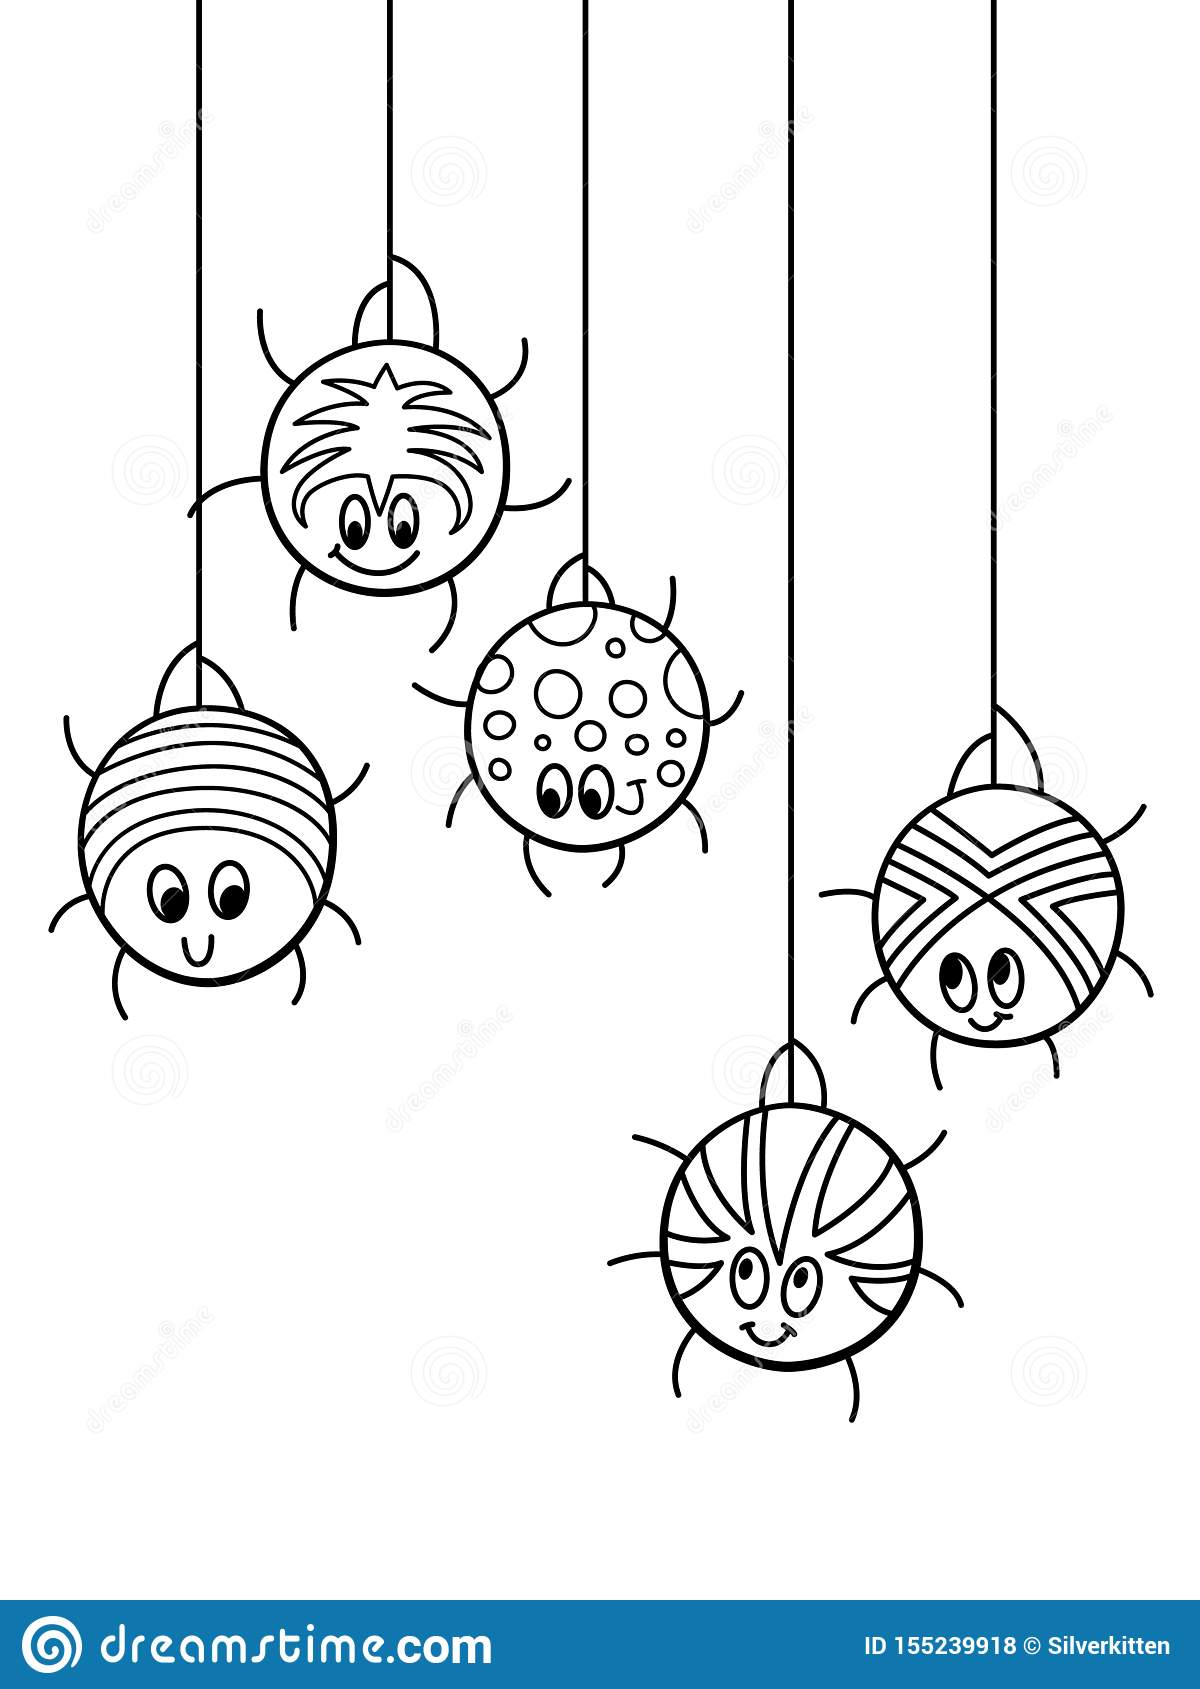 Spider coloring pages - Hellokids.com | 1689x1200